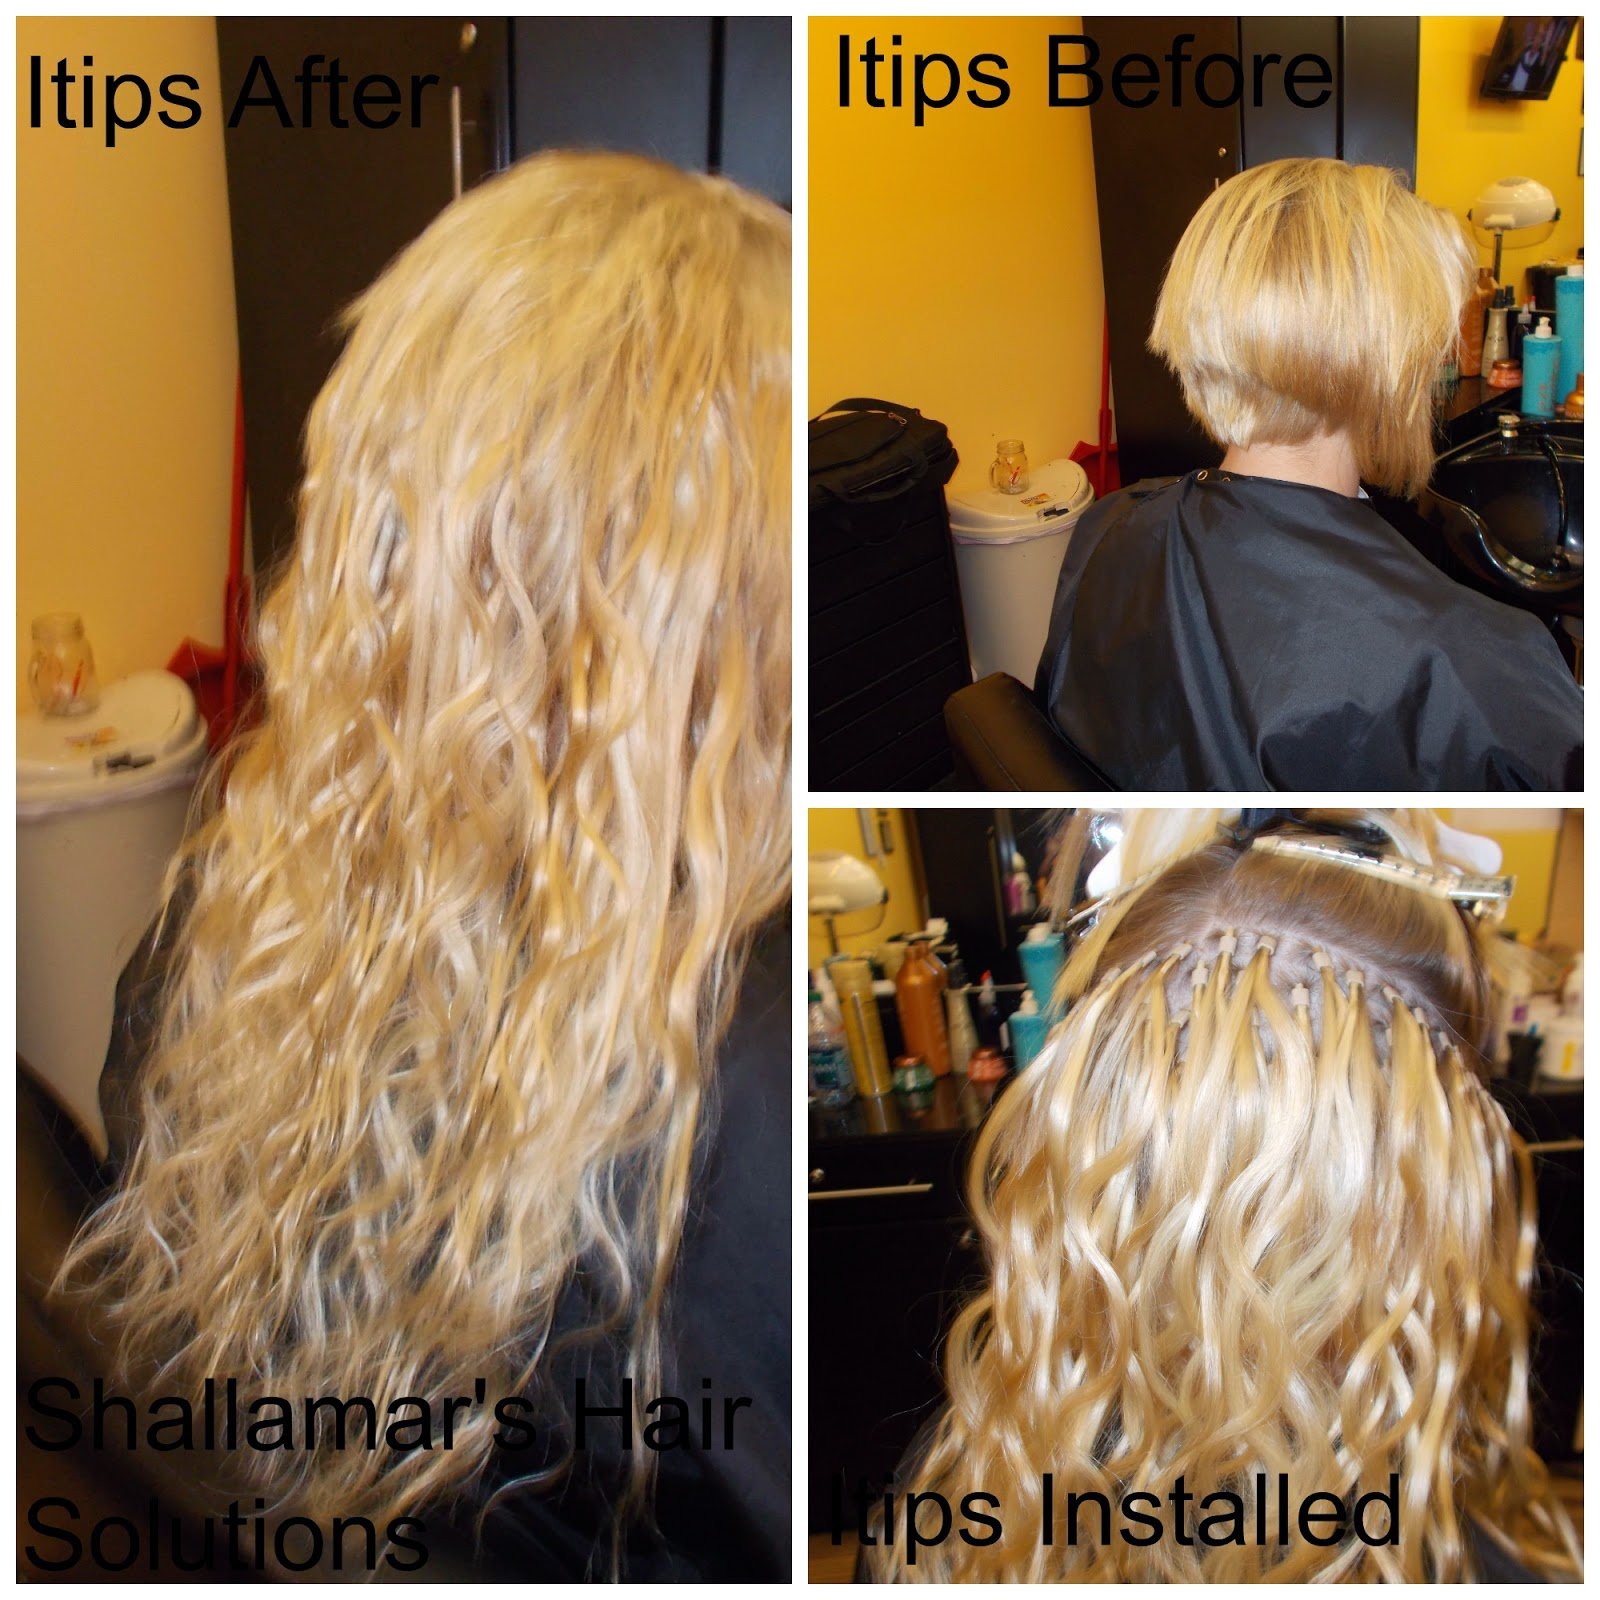 Hair Replacement Orlando Hair Extensions In Orlando